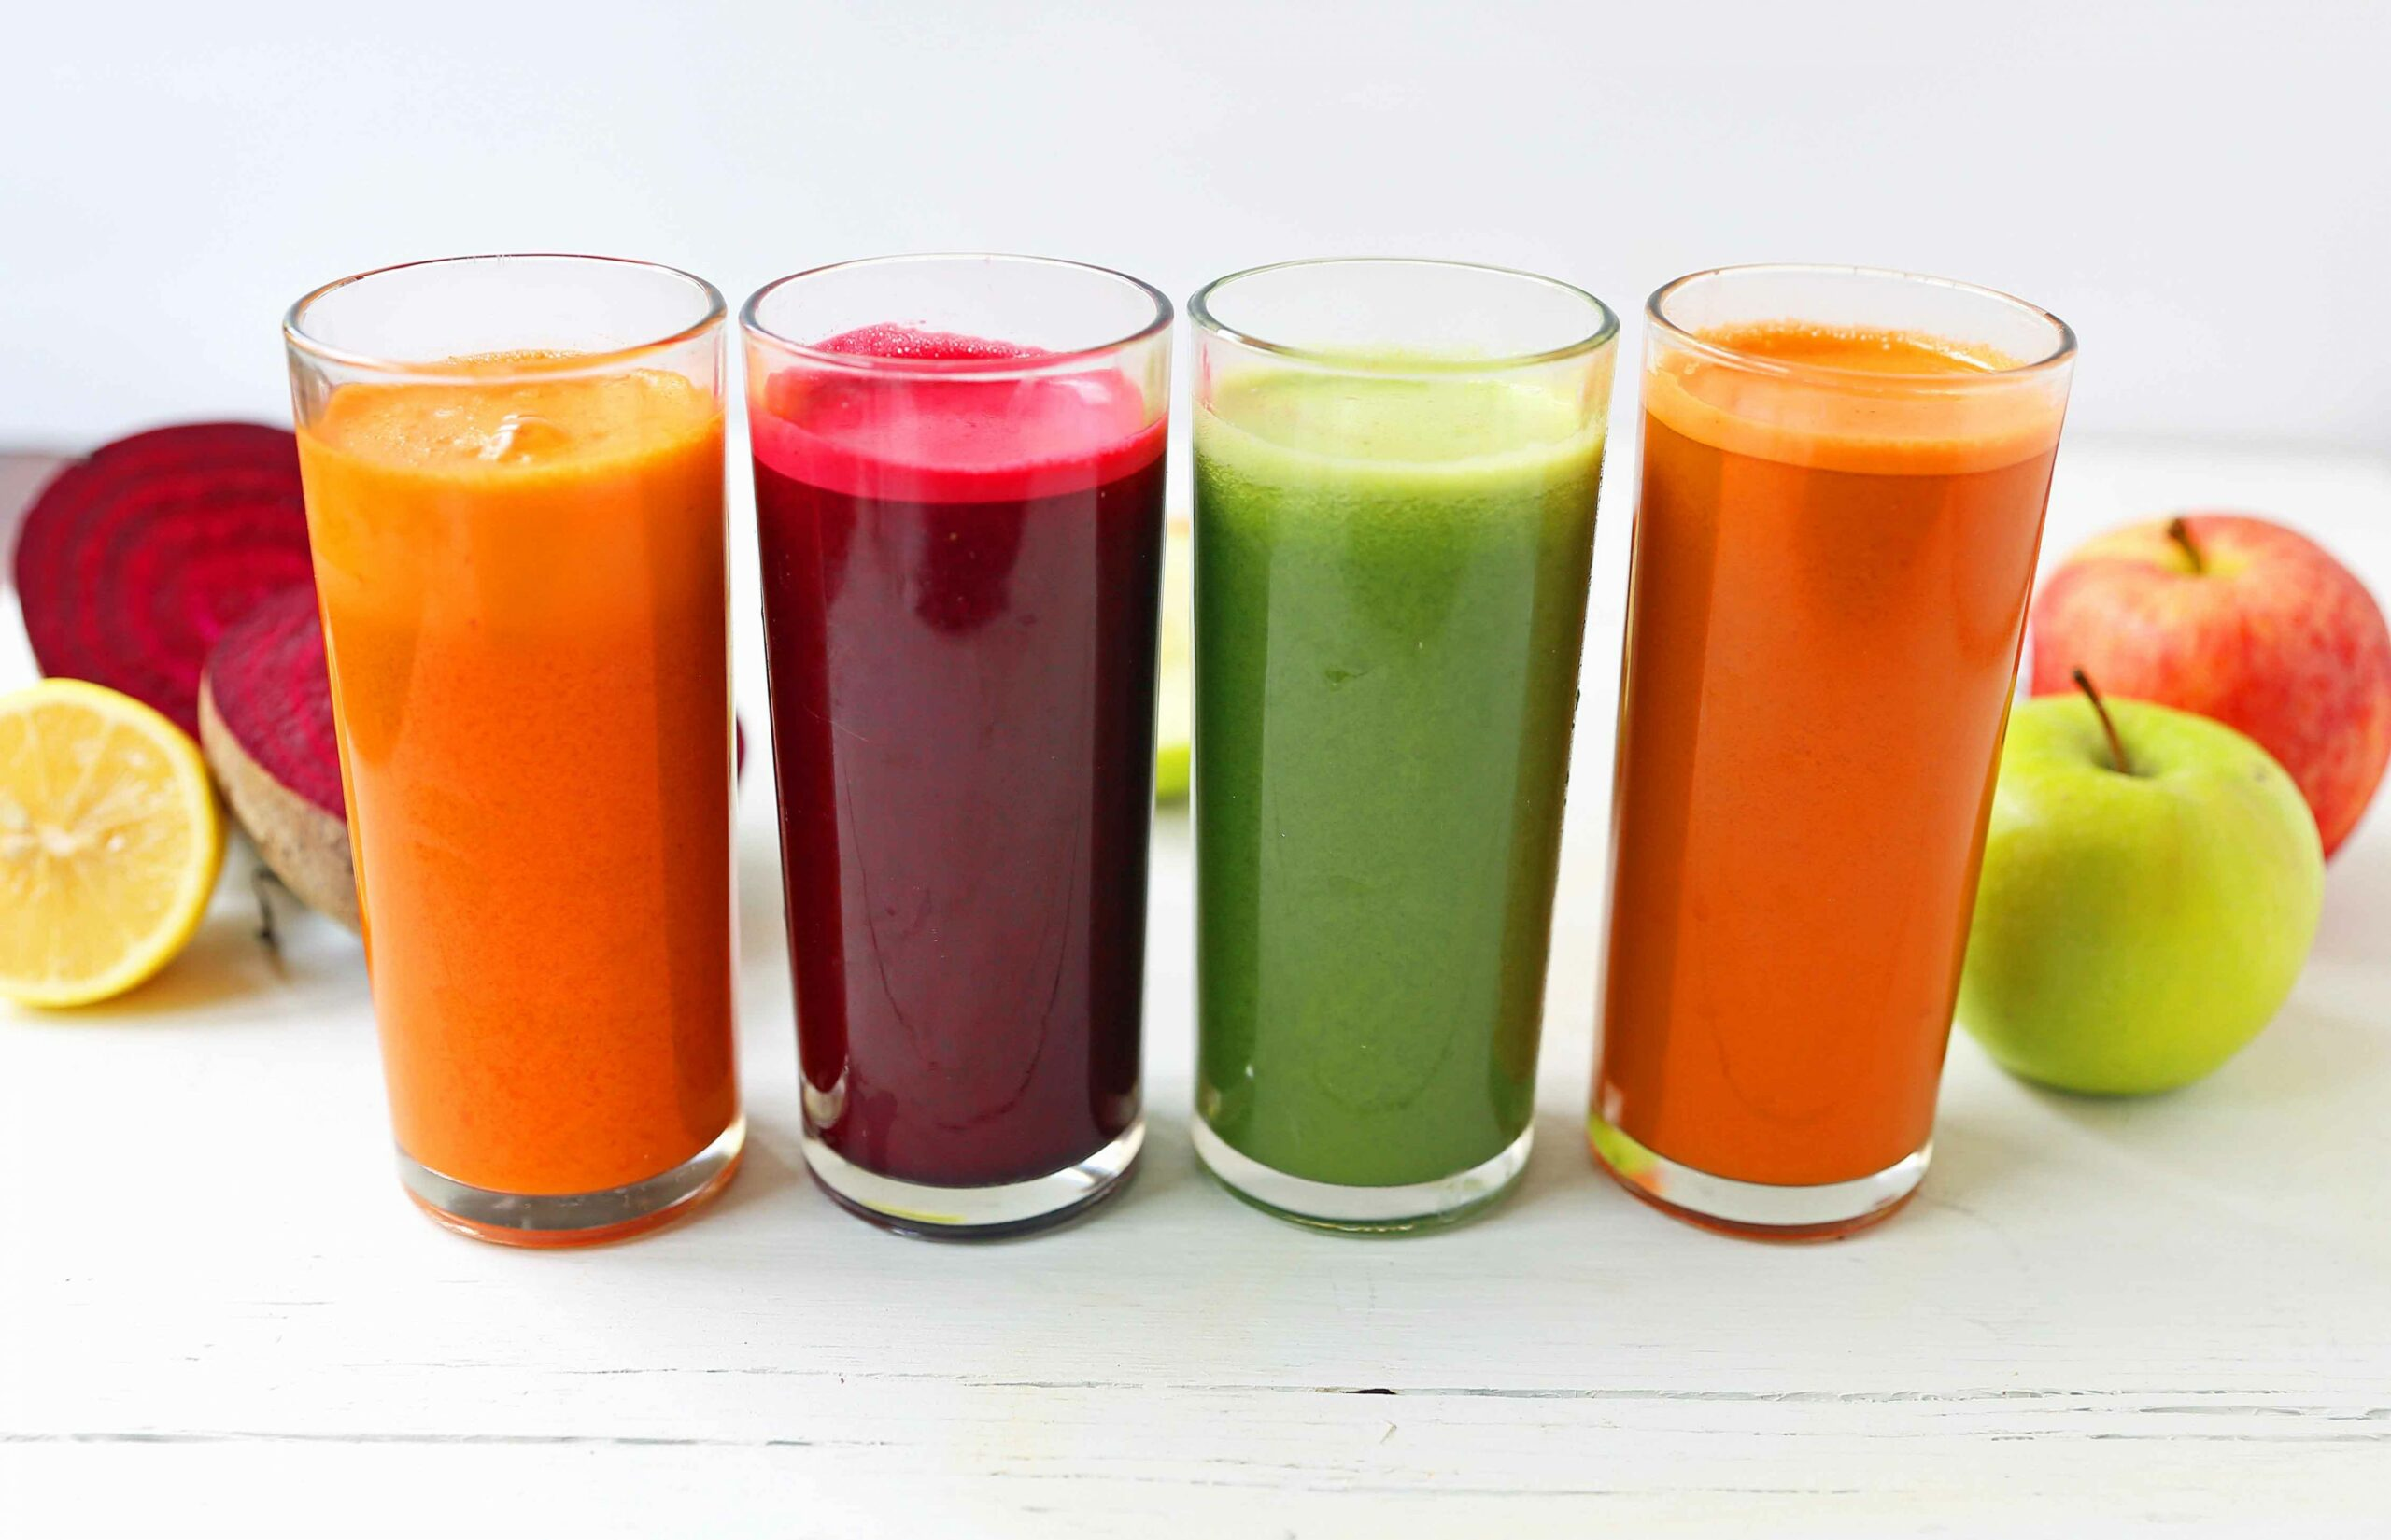 Healthy Juice Cleanse Recipes - Healthy Recipes Juice